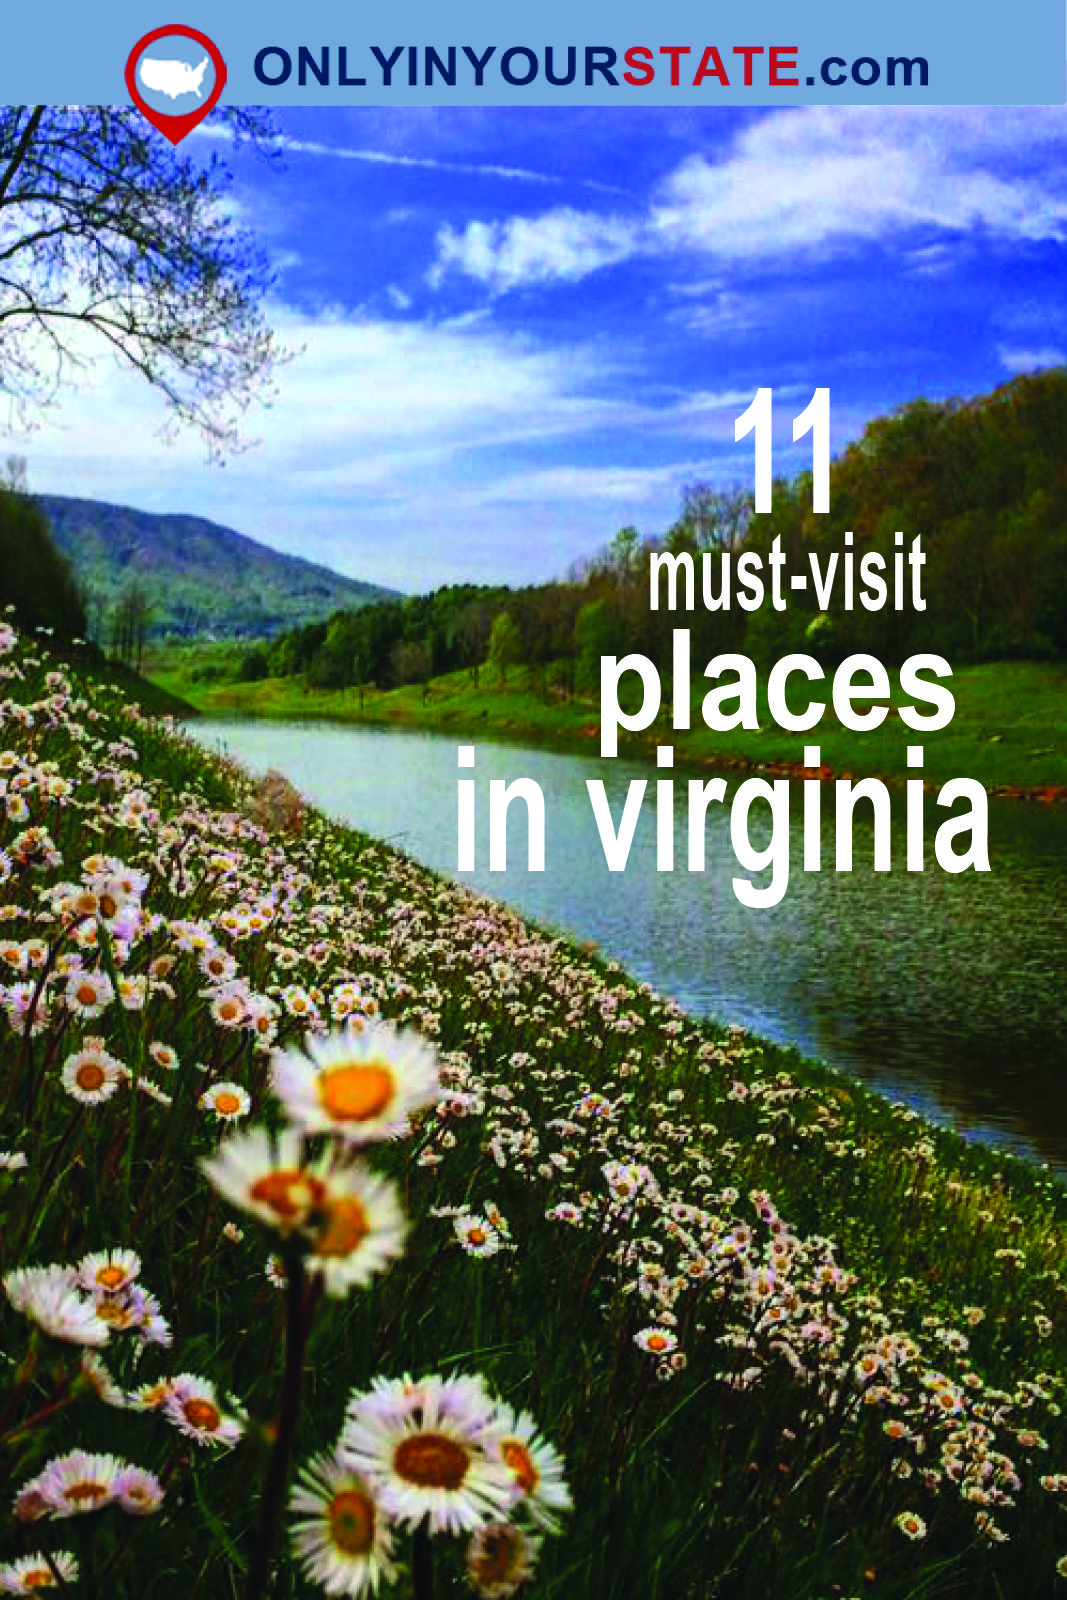 Travel Virginia Must Visit Adventure Site Seeing Beautiful Gorgeous Hiking Places To Go Things Do Wildflowers Weekend